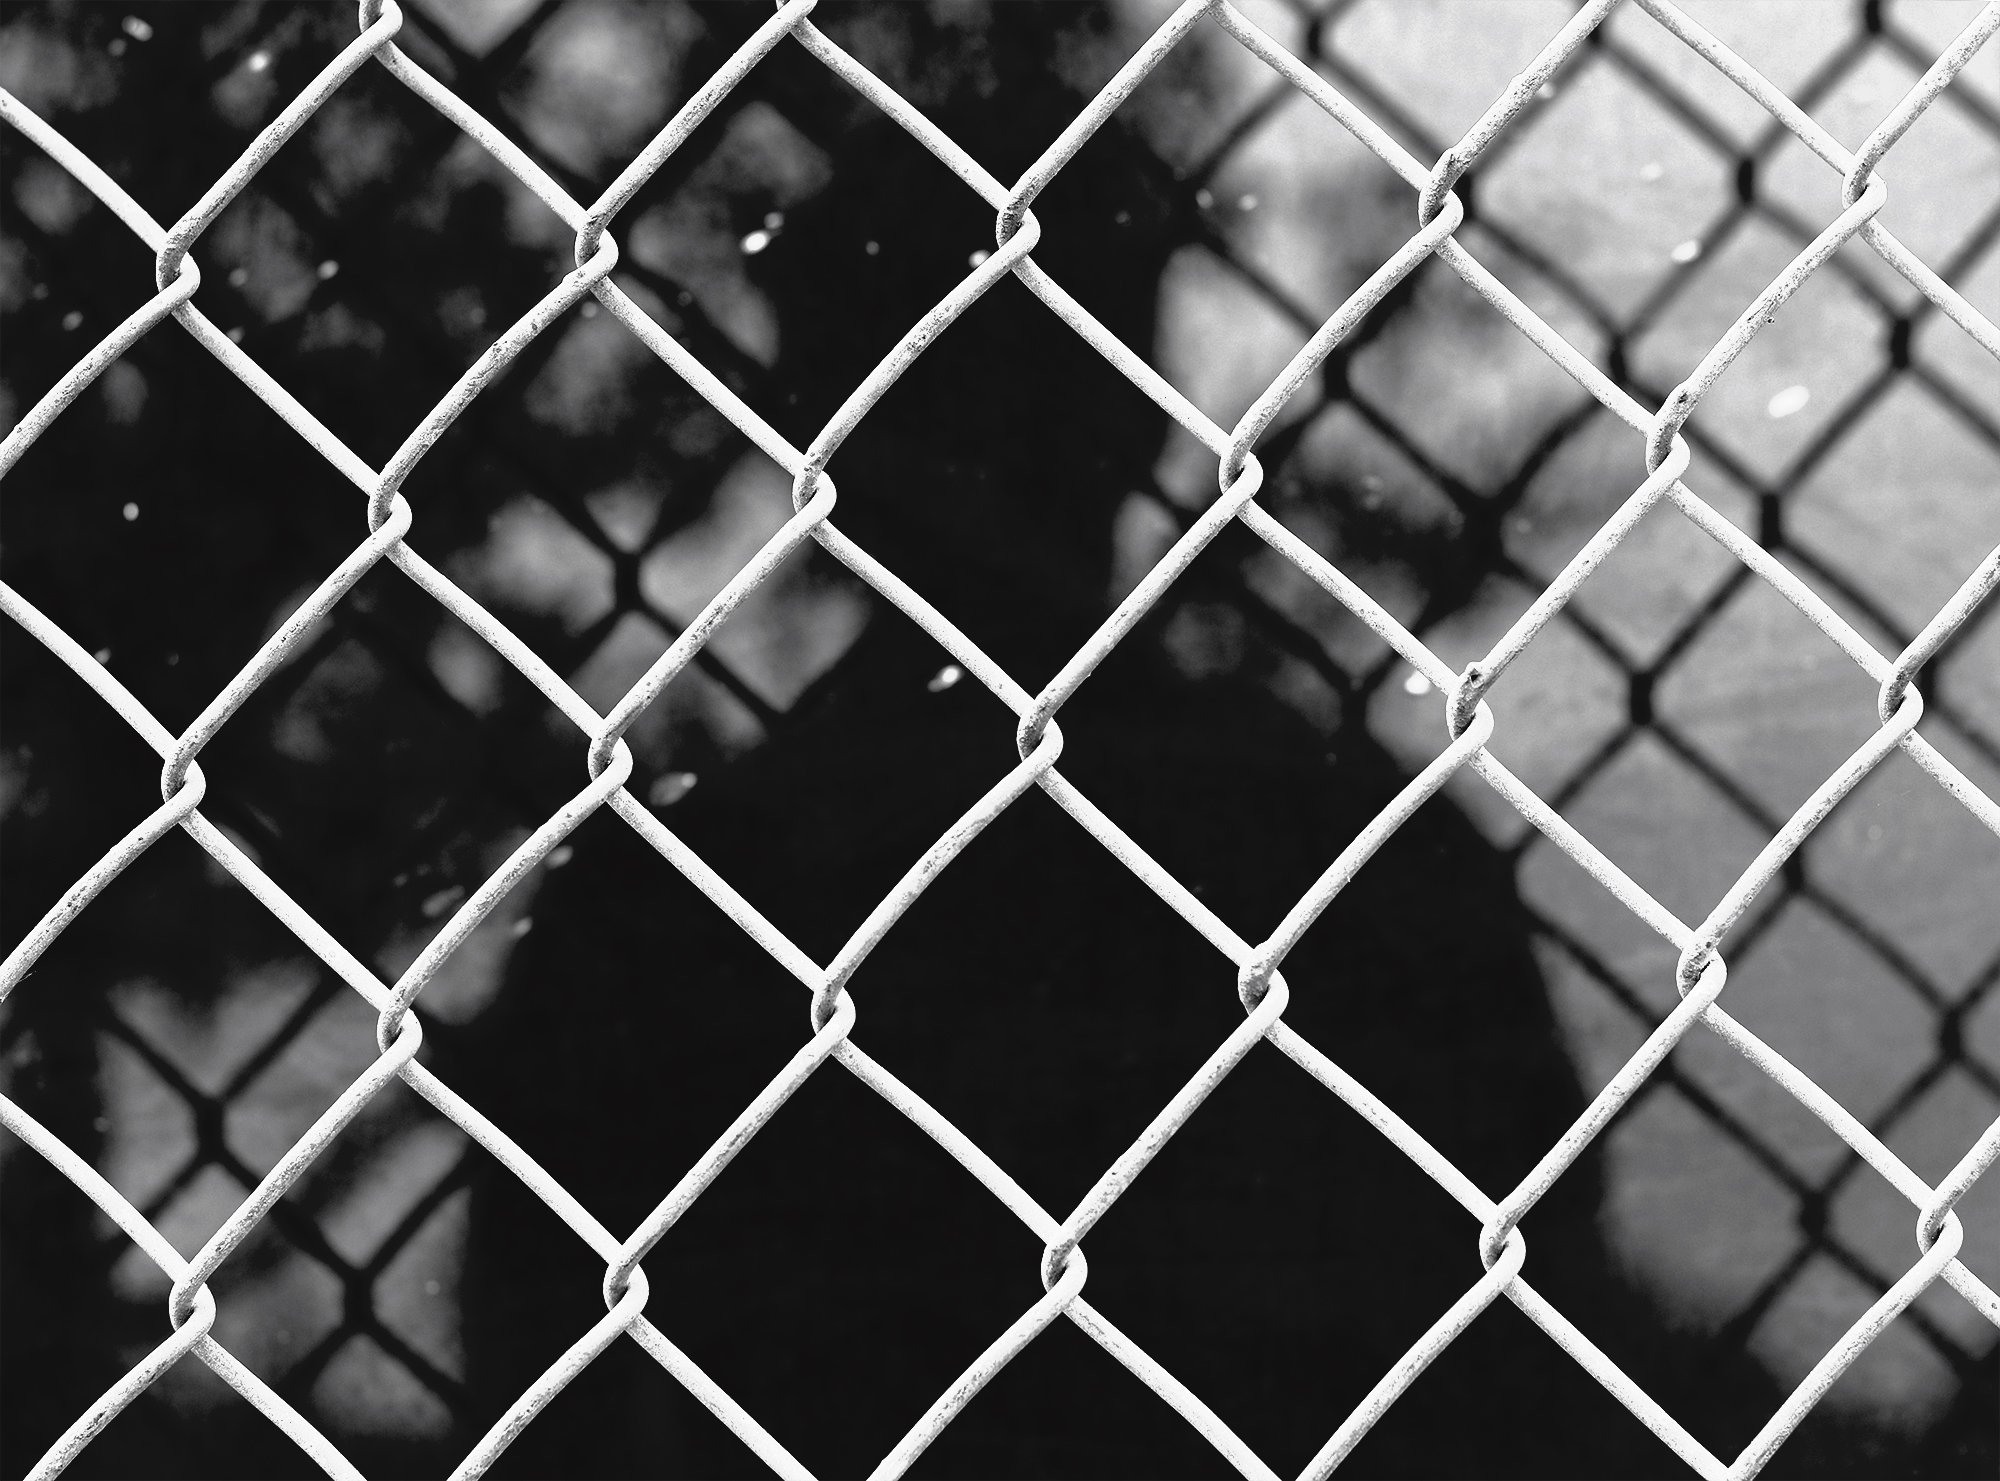 Don't Fence Me In - ©Jacob Clayton